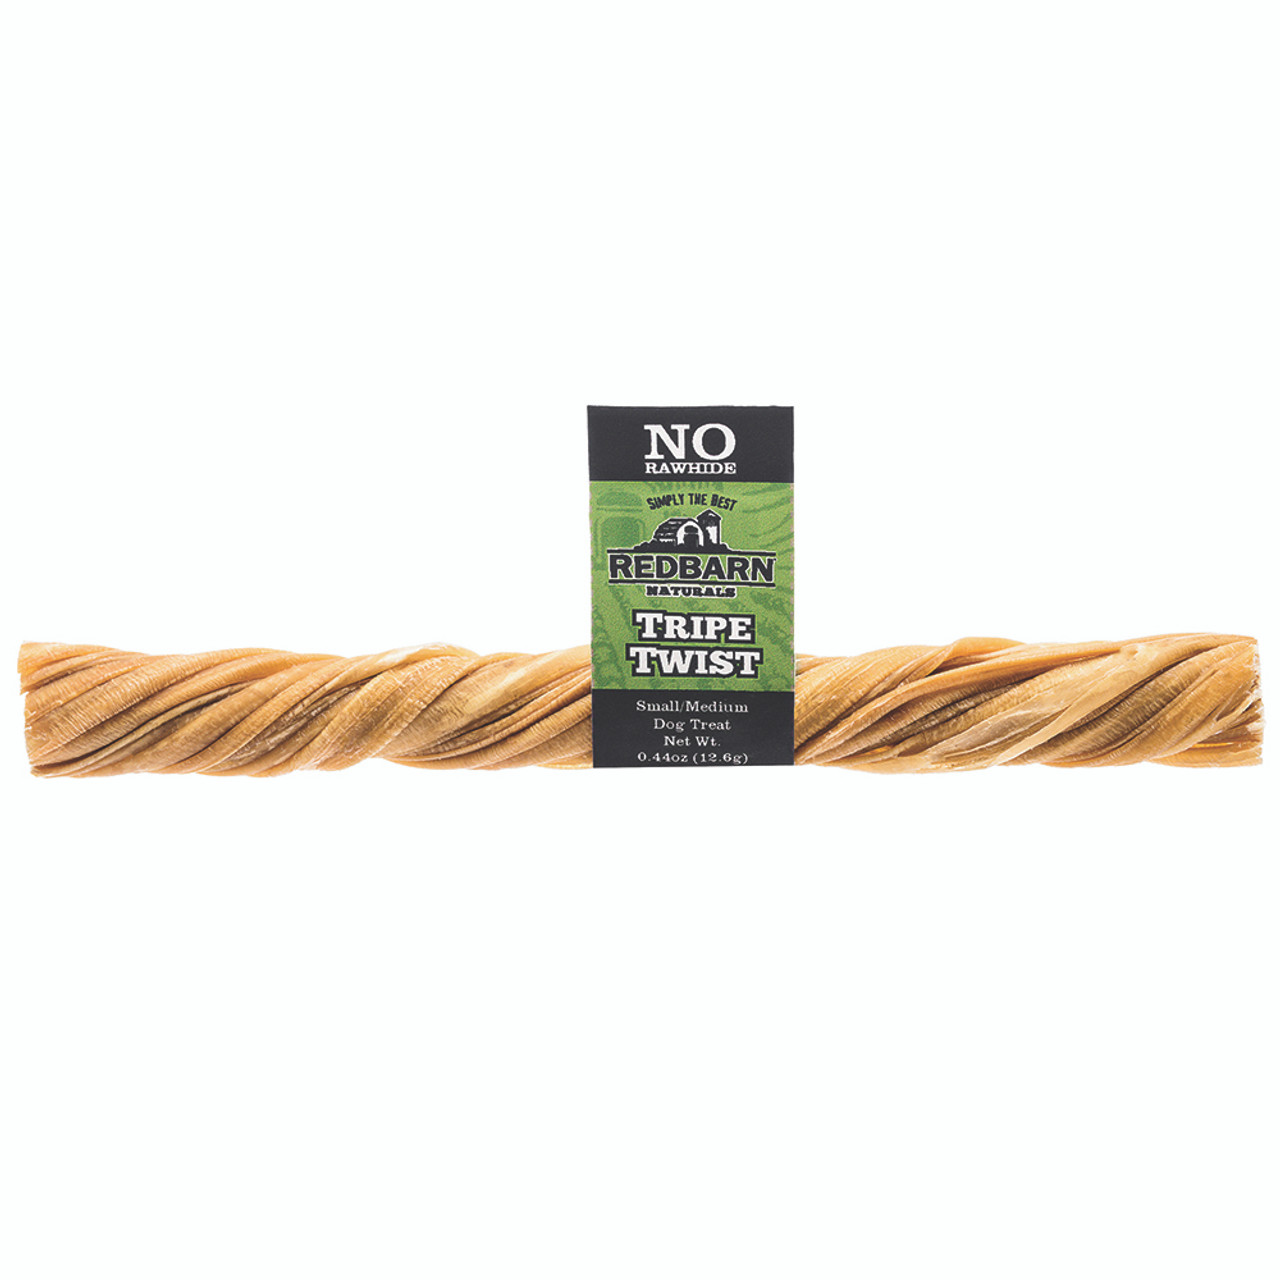 Redbarn Tripe Twist Dog Treat